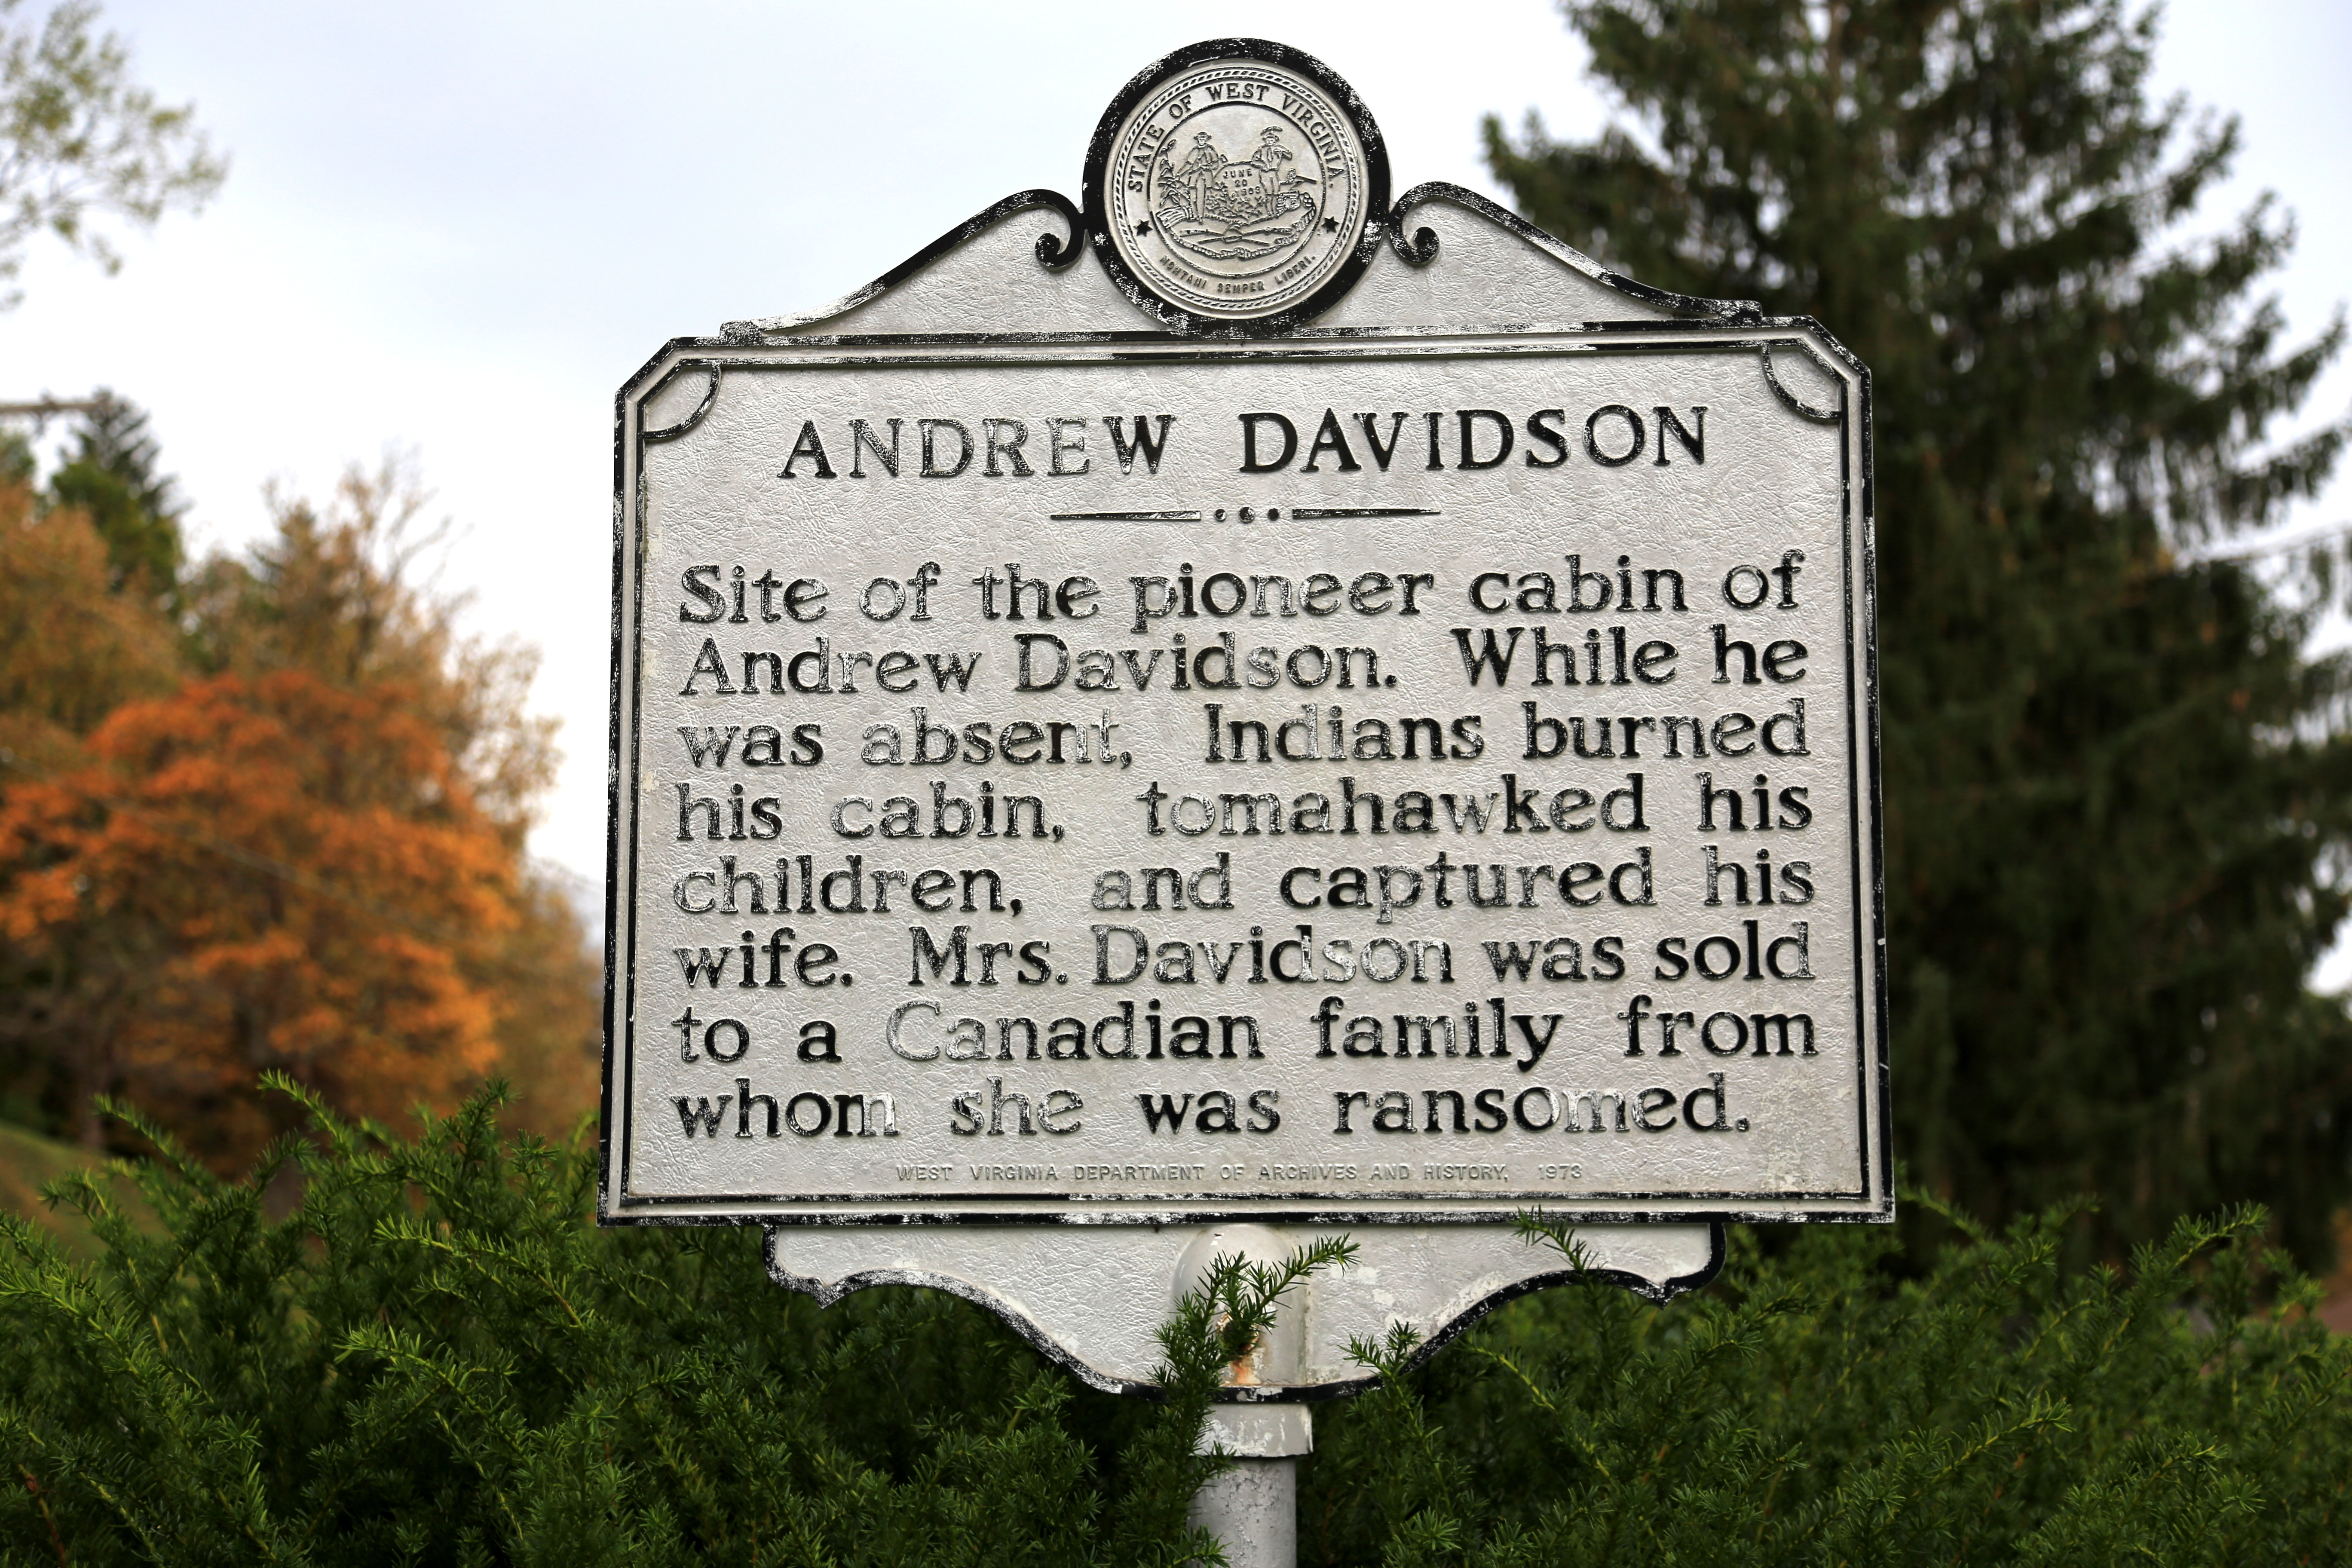 """Marker on the site of the Davidson Cabin. """"While he was absent, Indians burned his cabin, tomahawked his children, and captured his wife. Mrs. Davidson was sold to a Canadian family from whom she was ransomed."""""""